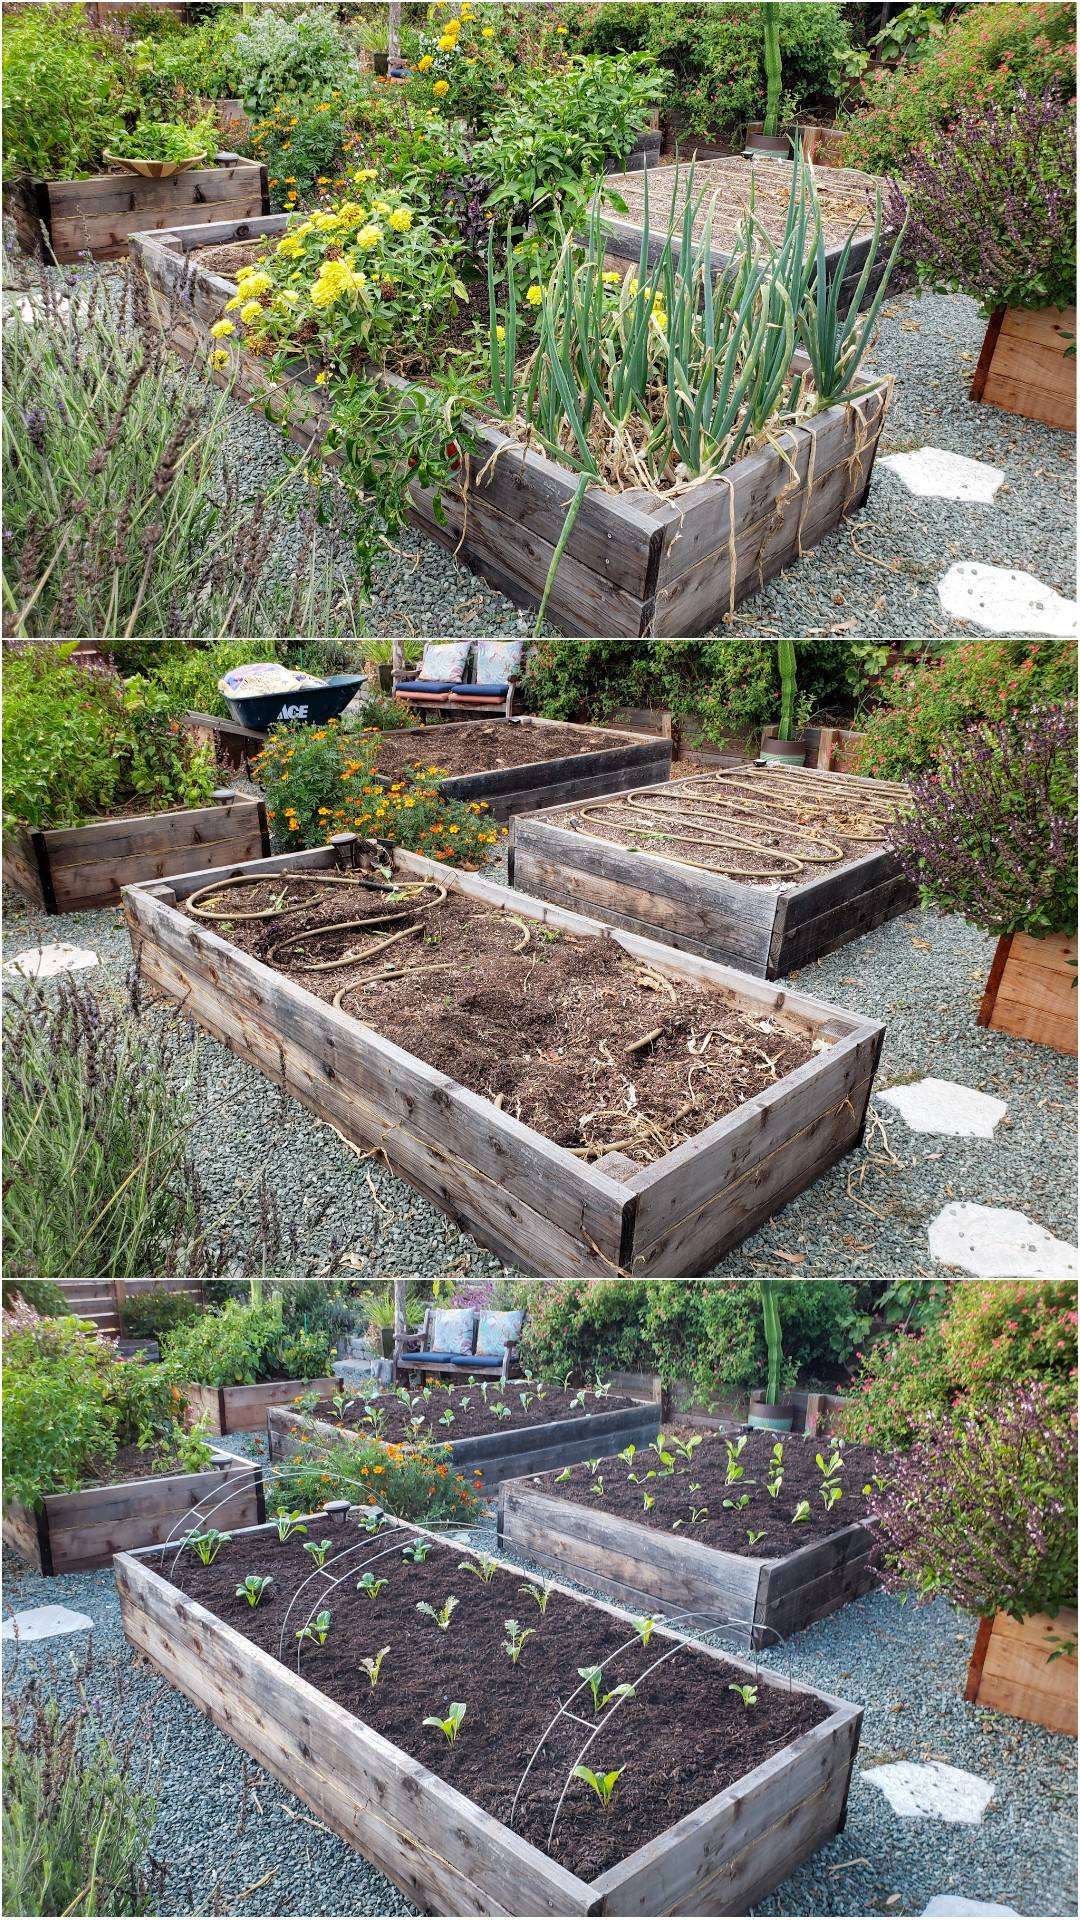 A three part image collage, the first image shows a number of garden beds, most of them are full of mature plants that are still producing fruit. There are various pollinator plants planted throughout the area as well. The second image shows the same garden beds, however, all of them are now empty except one. There are soaker hoses sitting in two of the three beds and some of the soil looks disturbed from removing the plants. The third image shows the same garden beds after being re-amended with fertilizer and fresh compost. The garden beds have also been planted out with tender young seedlings, spaced in neat rows, all standing up perky, pointing towards the sun.